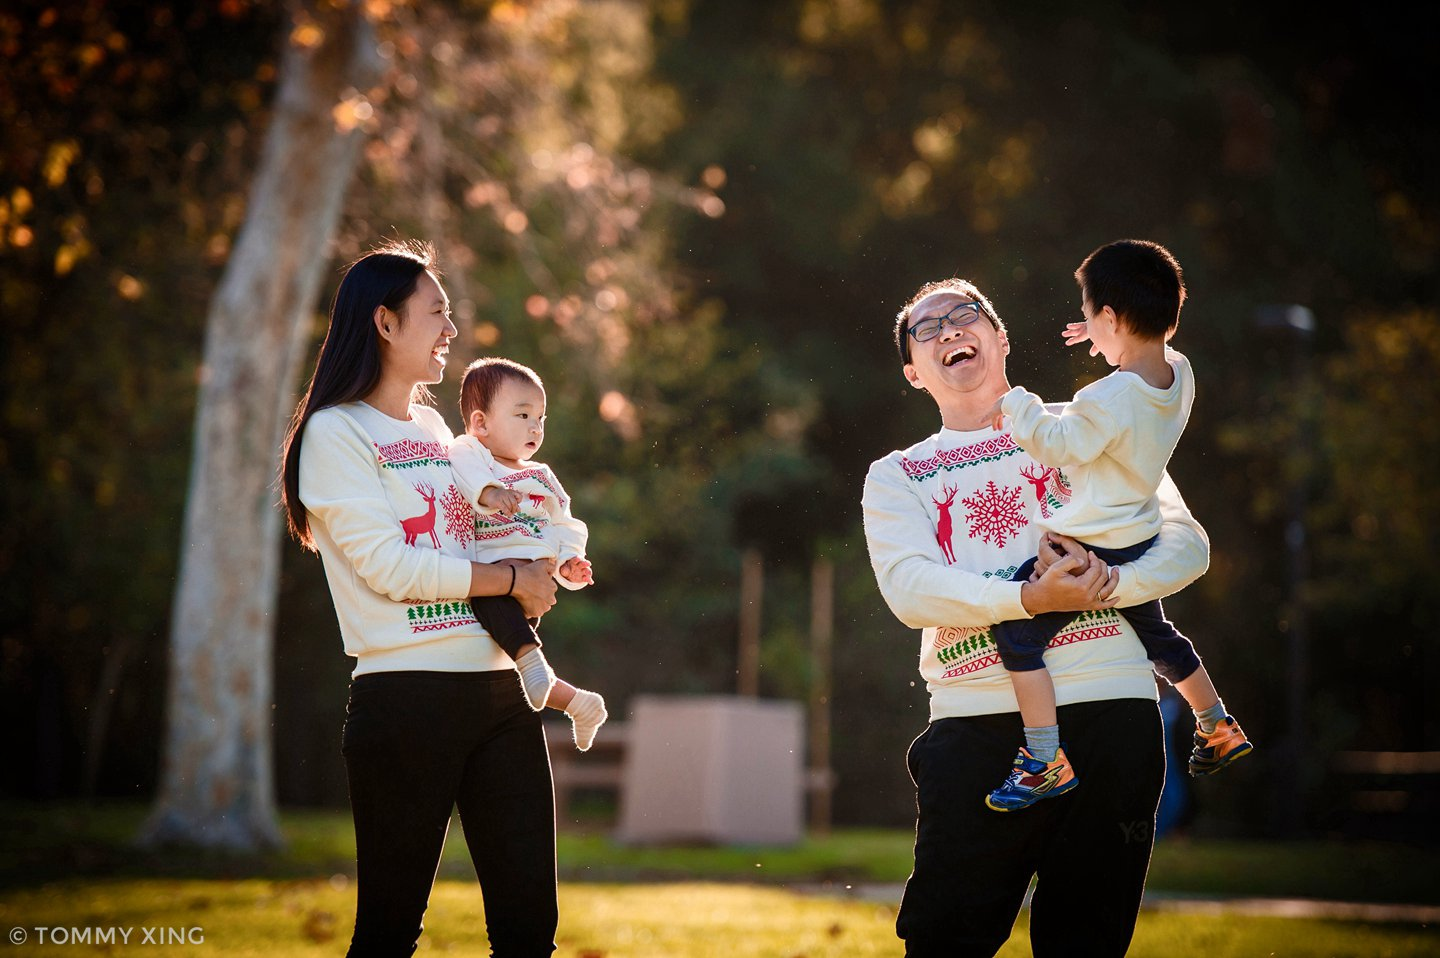 Los Angeles Family Portrait Photographer 洛杉矶家庭摄影师 Tommy Xing  09.jpg